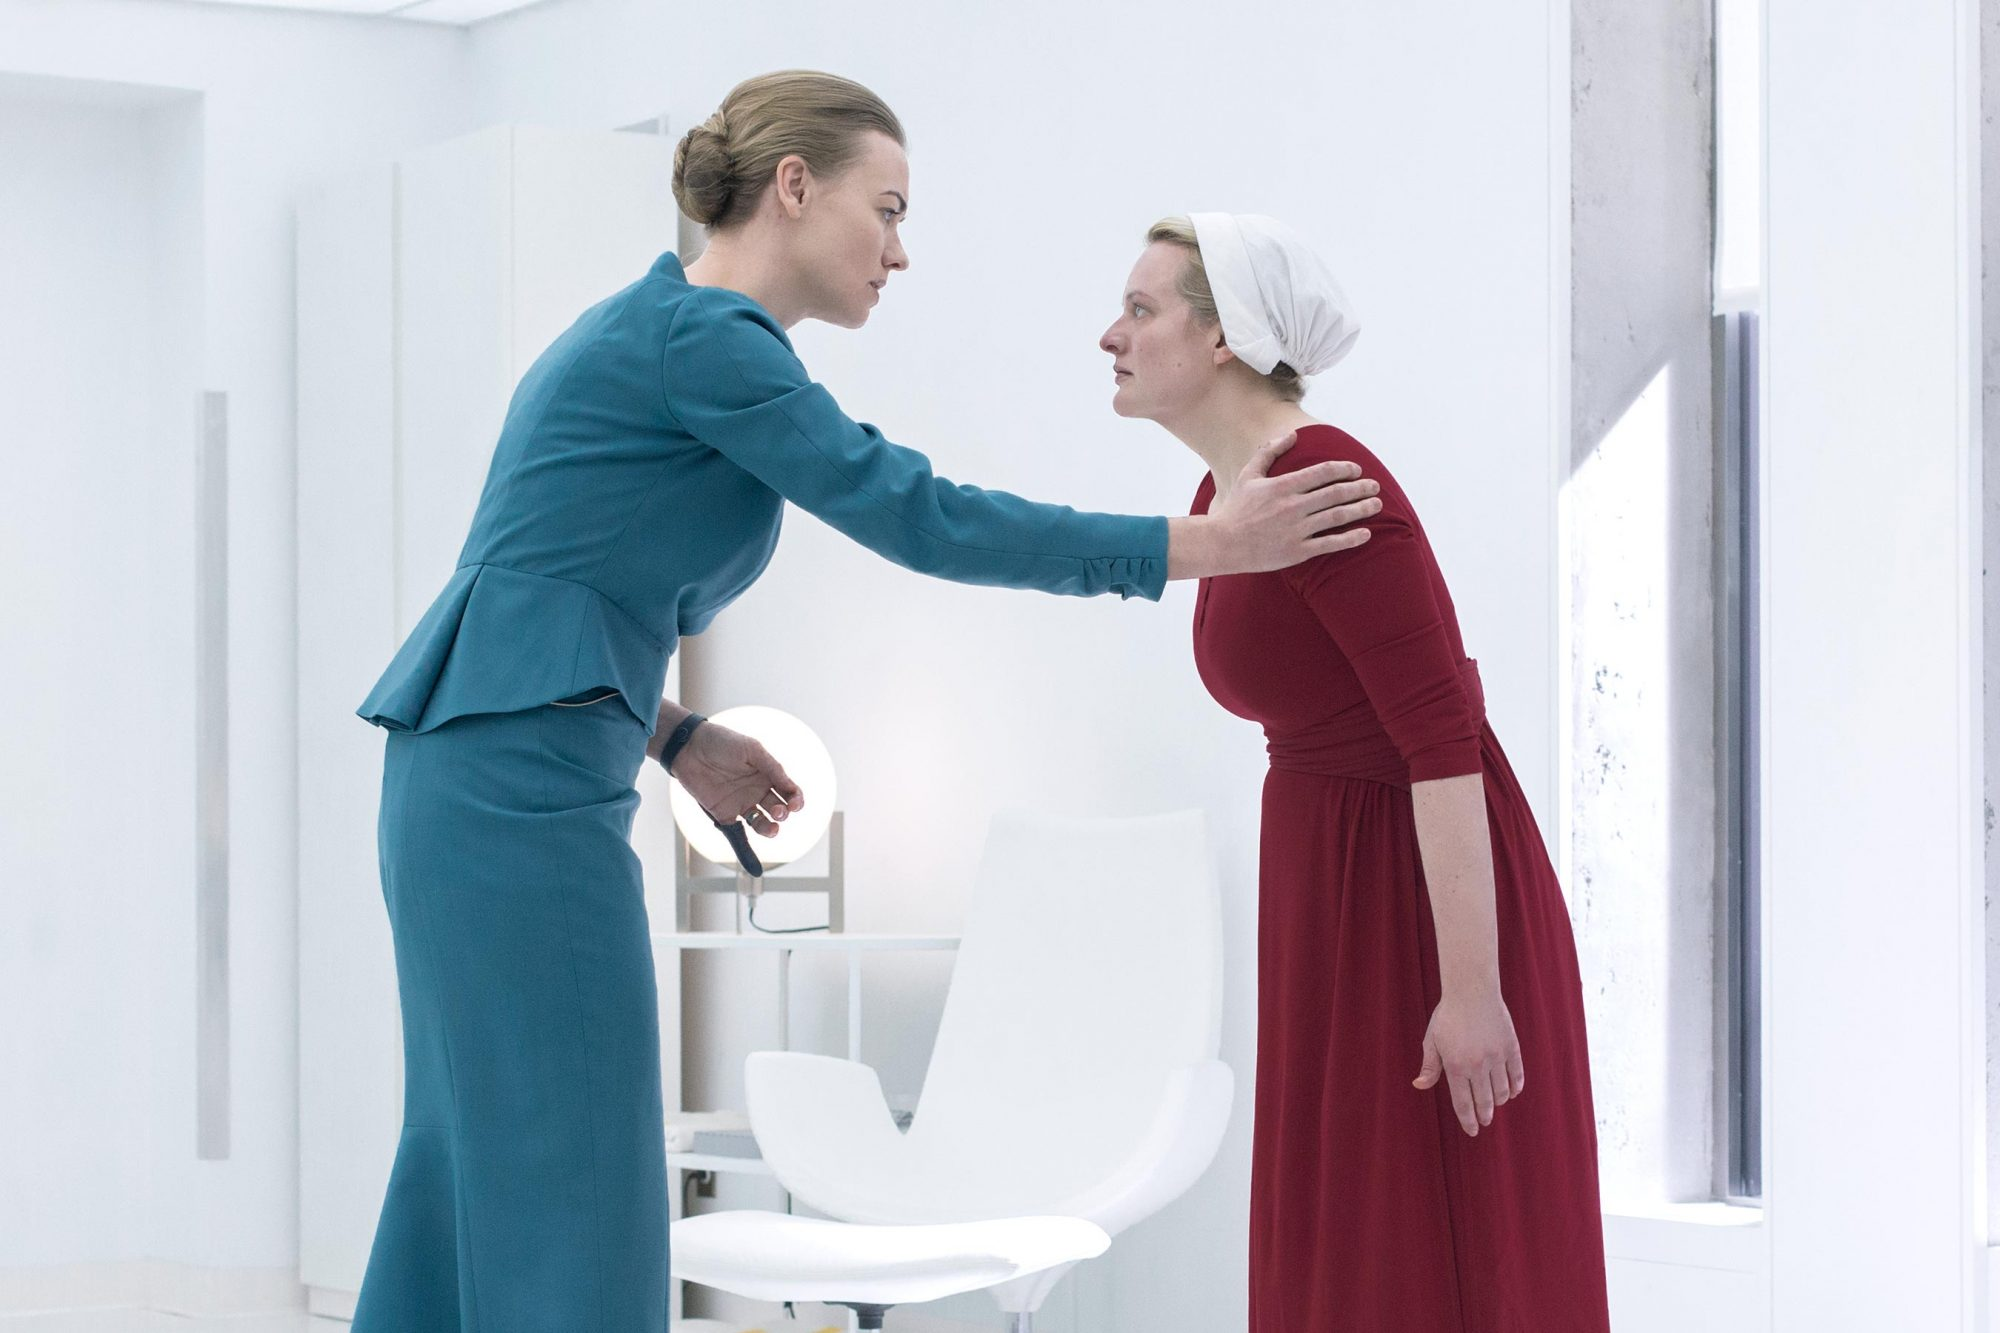 "The Handmaid's Tale -- ""Heroic"" - Episode 309 -- Confined in a hospital, Juneís sanity begins to fray. An encounter with Serena Joy forces June to reassess her recent actions. Serena (Yvonne Strahovski) and June (Elisabeth Moss), shown. (Photo by: Sophie Giraud/Hulu)"